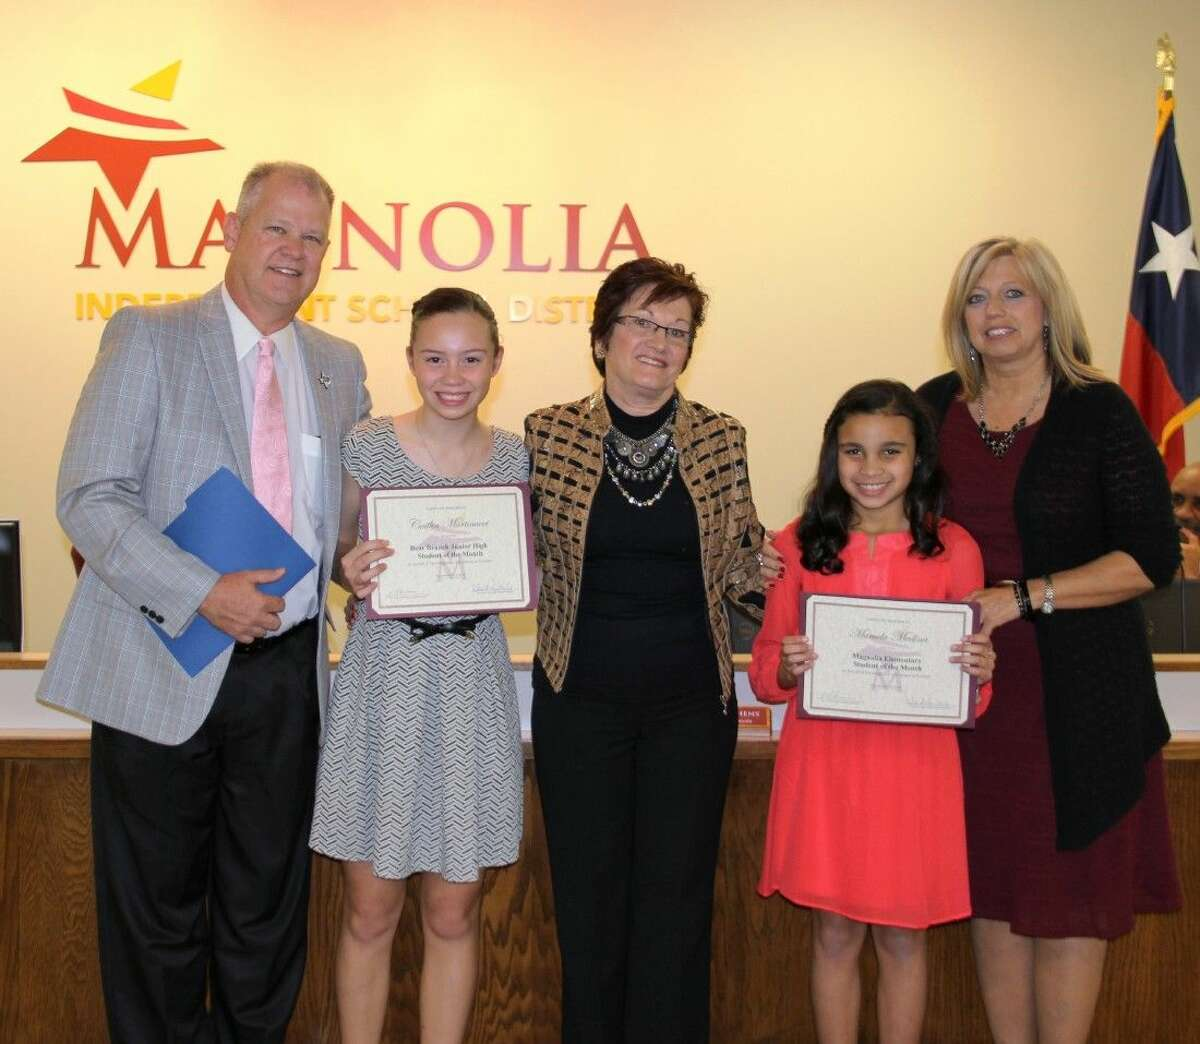 School Board President Deborah Rose Miller along with Principals Gerald Evans and Linda Kenjura honor their students Caitlin Martinucci from Bear Branch Junior High and Marcela Medina from Magnolia Elementary.